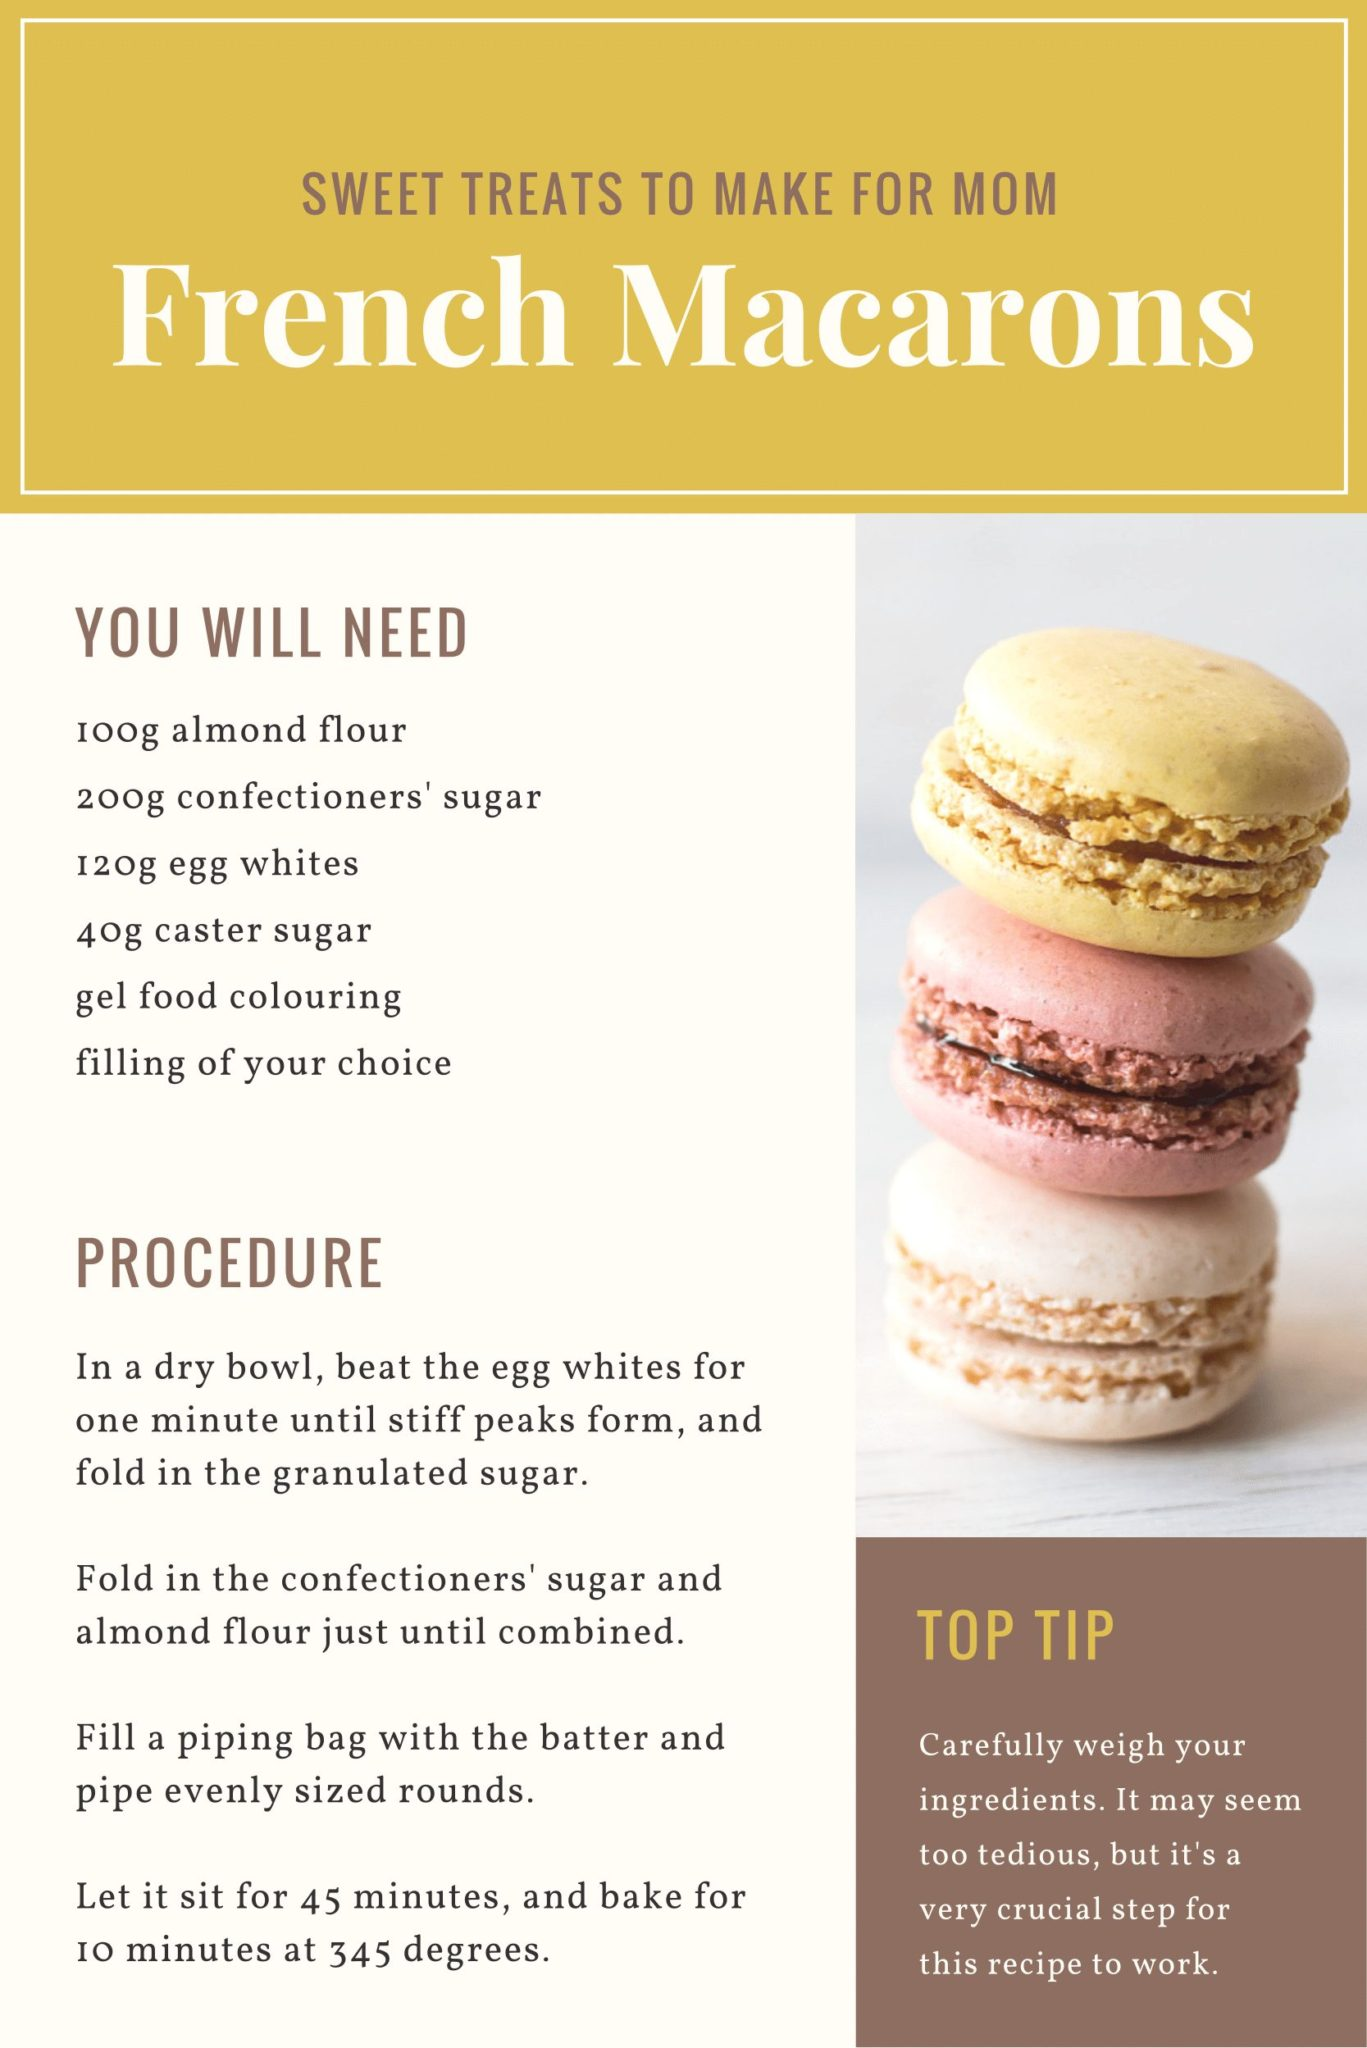 Recipe for French Macaroons